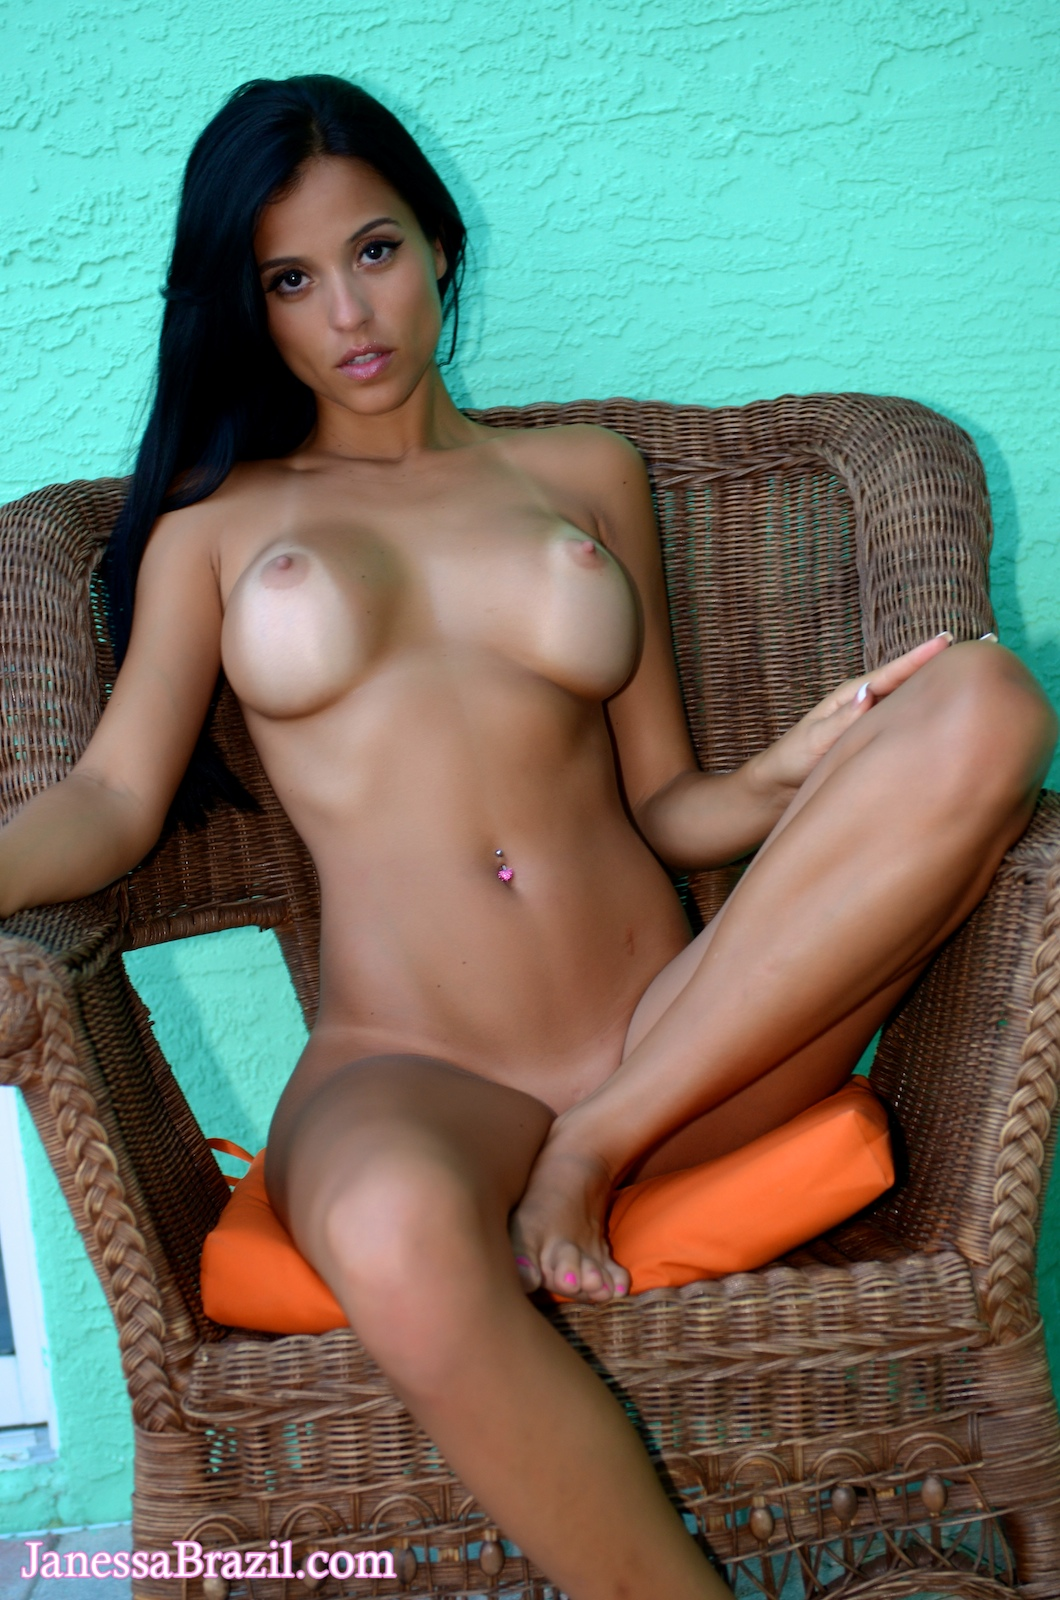 girls nude boobs Hot brazilian